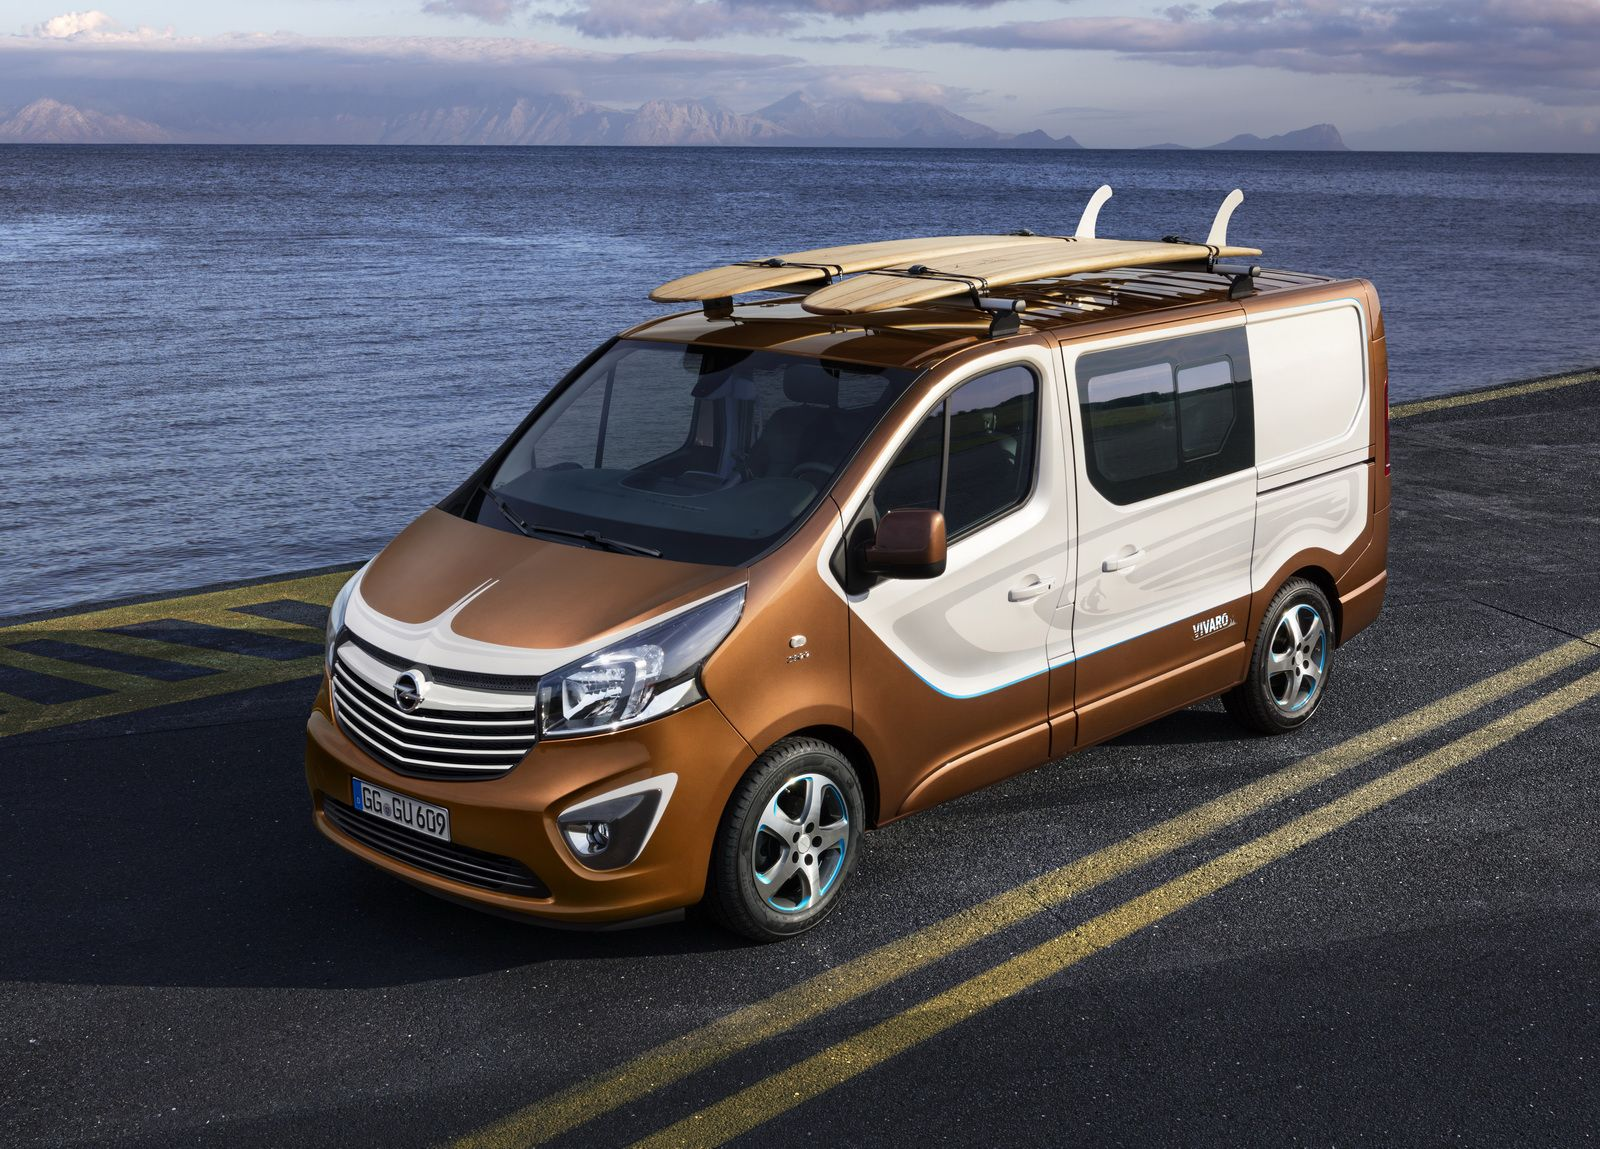 Opel Vivaro Surf Concept To Debut In Frankfurt May Preview Limited Edition Carscoops In 2020 Vauxhall Vivaro Camper Opel Van